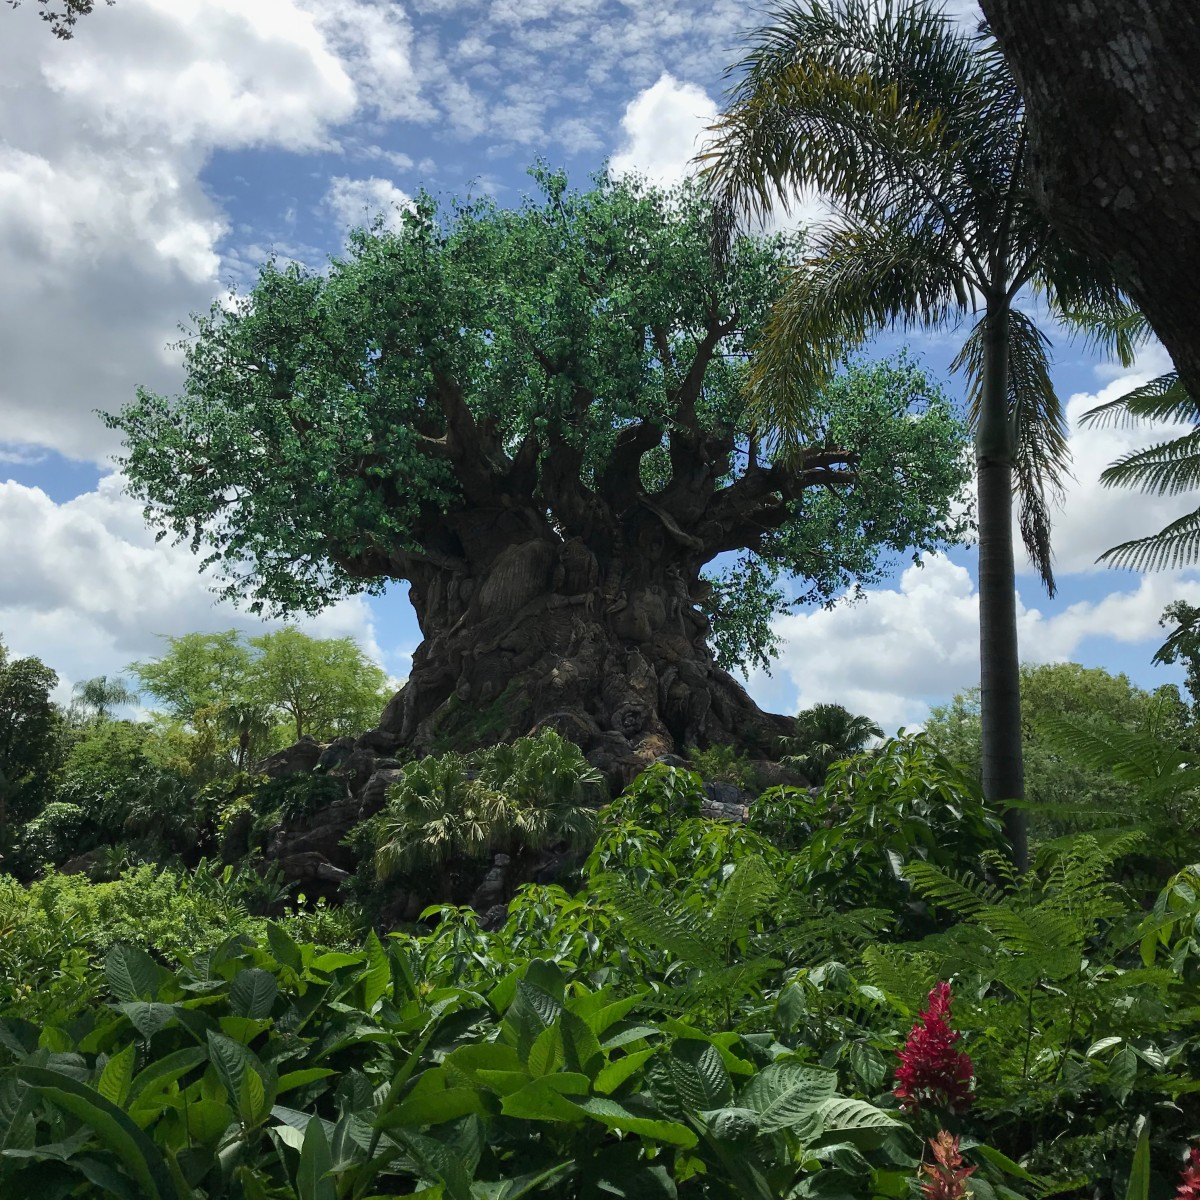 The Tree of Life centerpiece of Animal Kingdom.